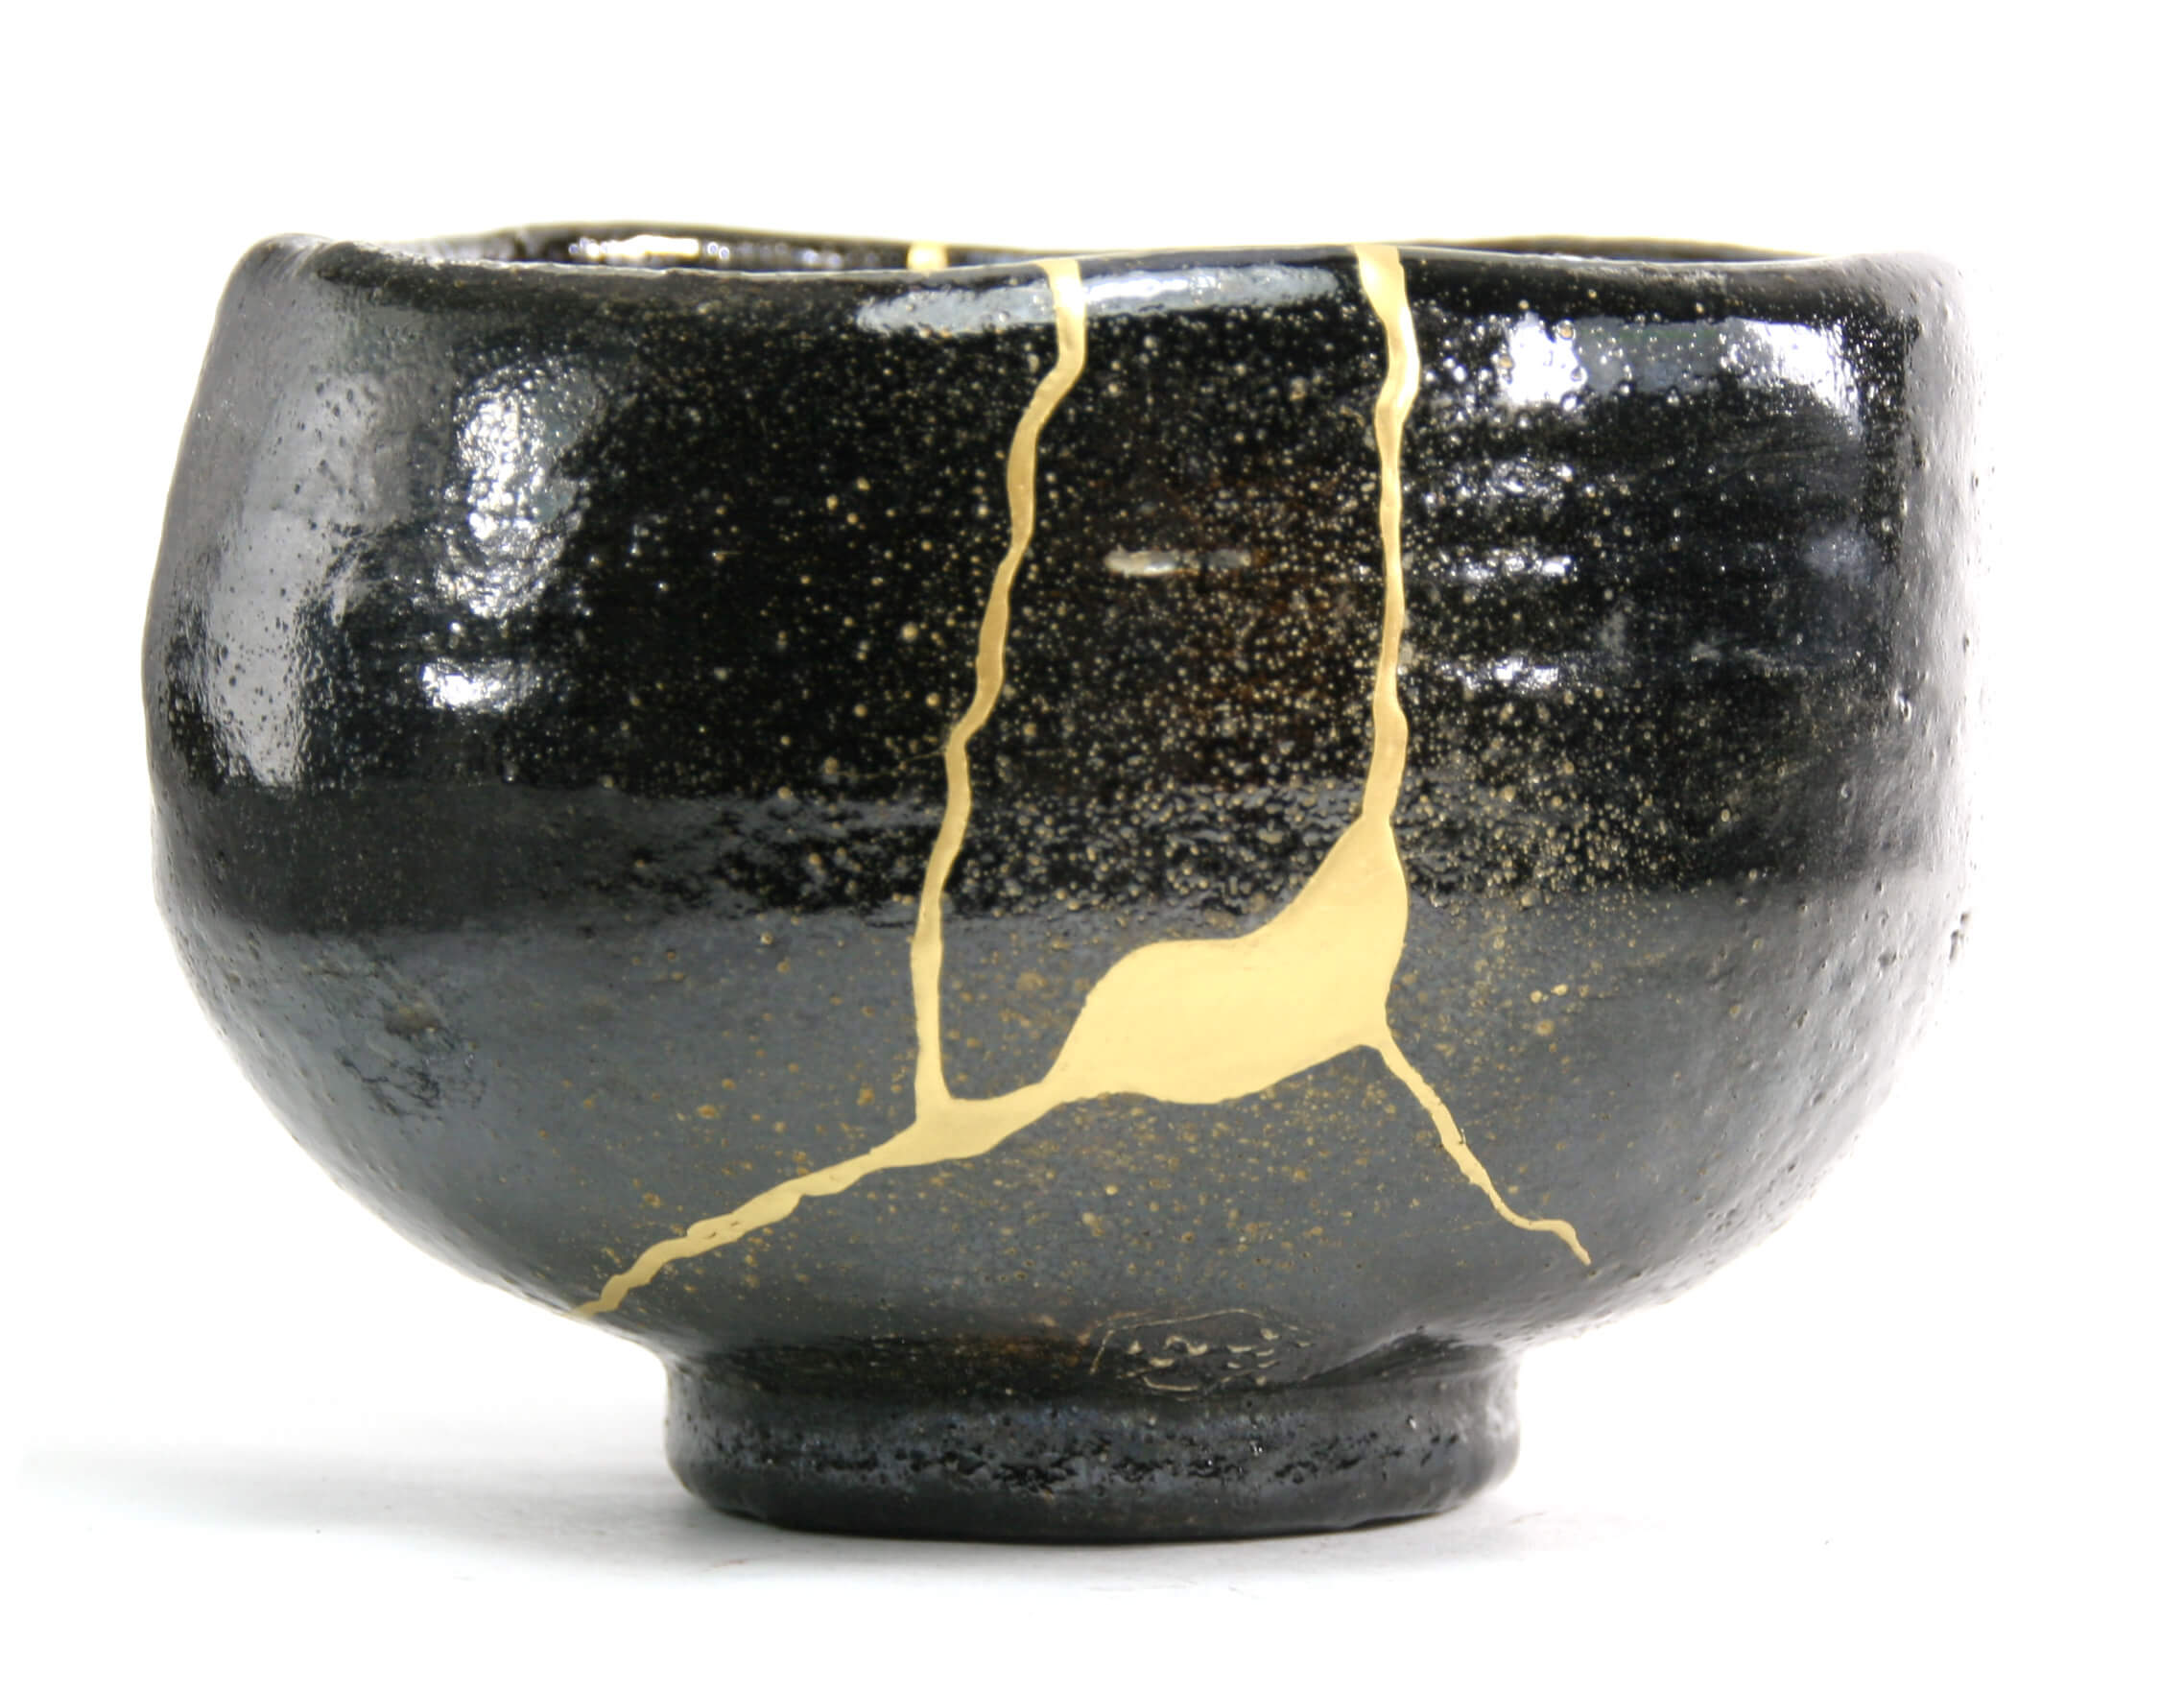 The Kintsugi The New Trend Of Personal Development And